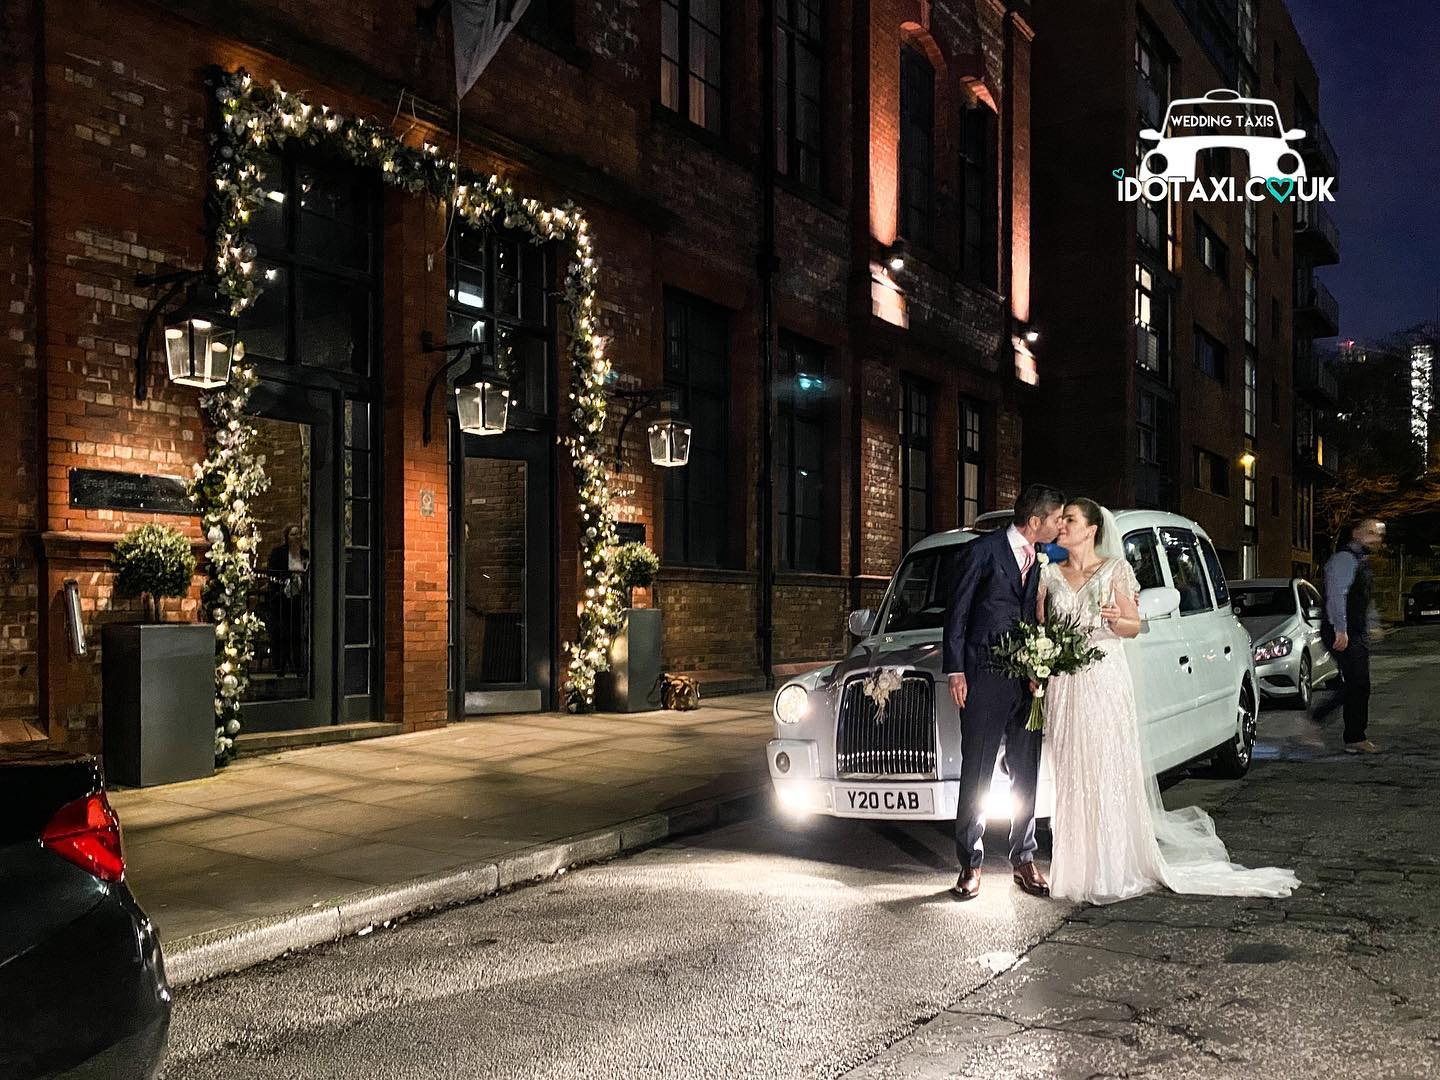 wedding cars and taxis idotaxi manchester